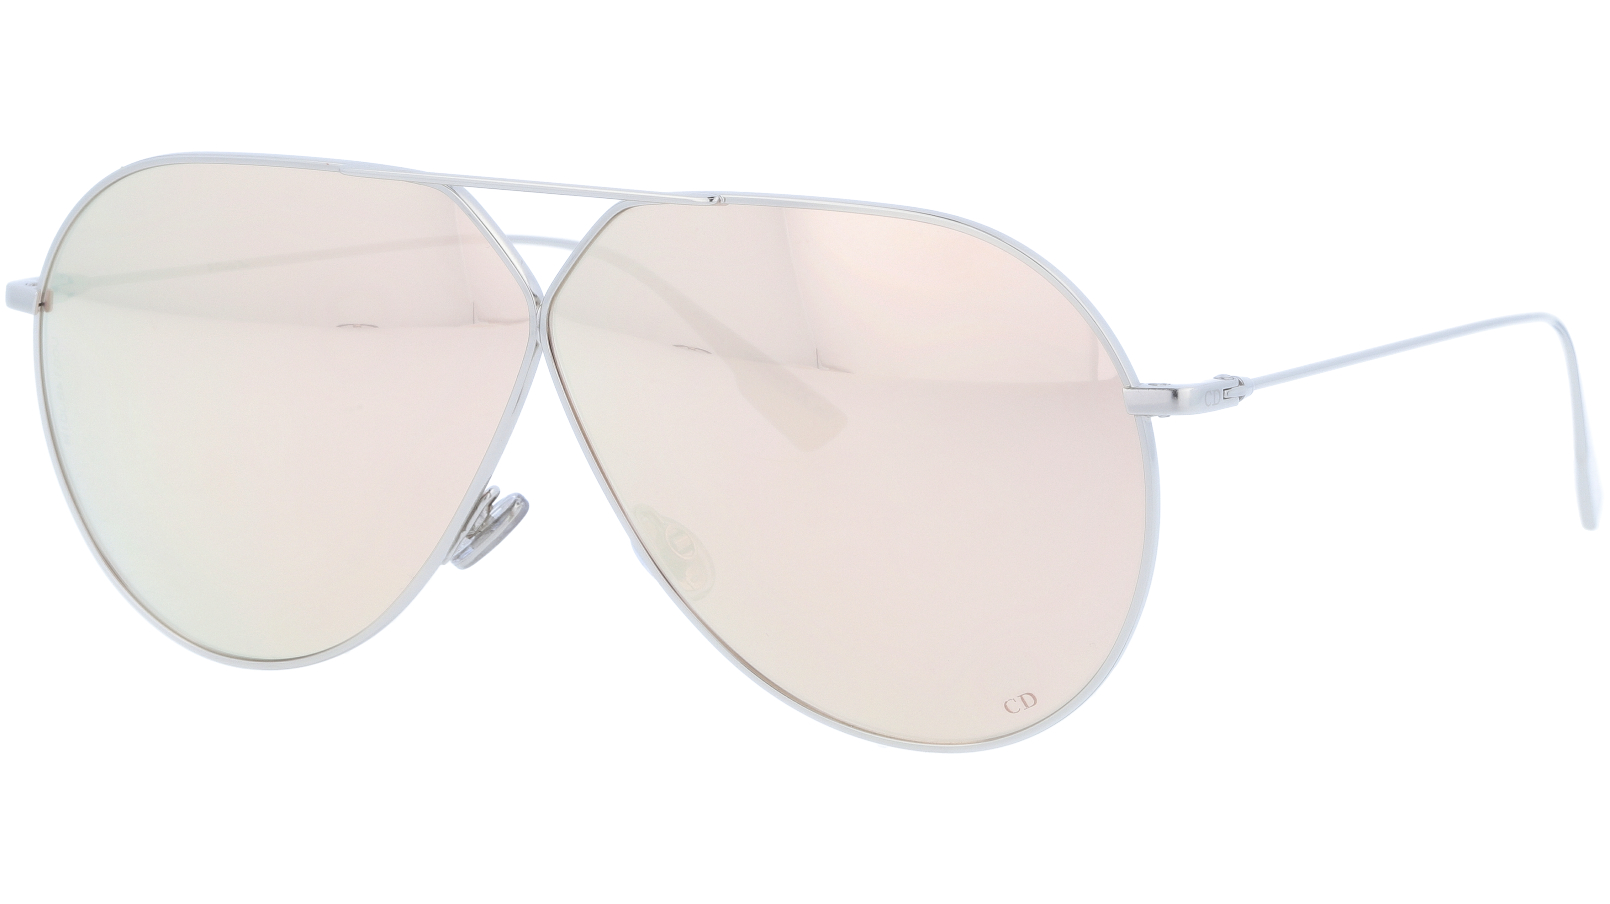 DIOR DIORSTELLAIRE3 3YGIR 65 LIGHT Sunglasses